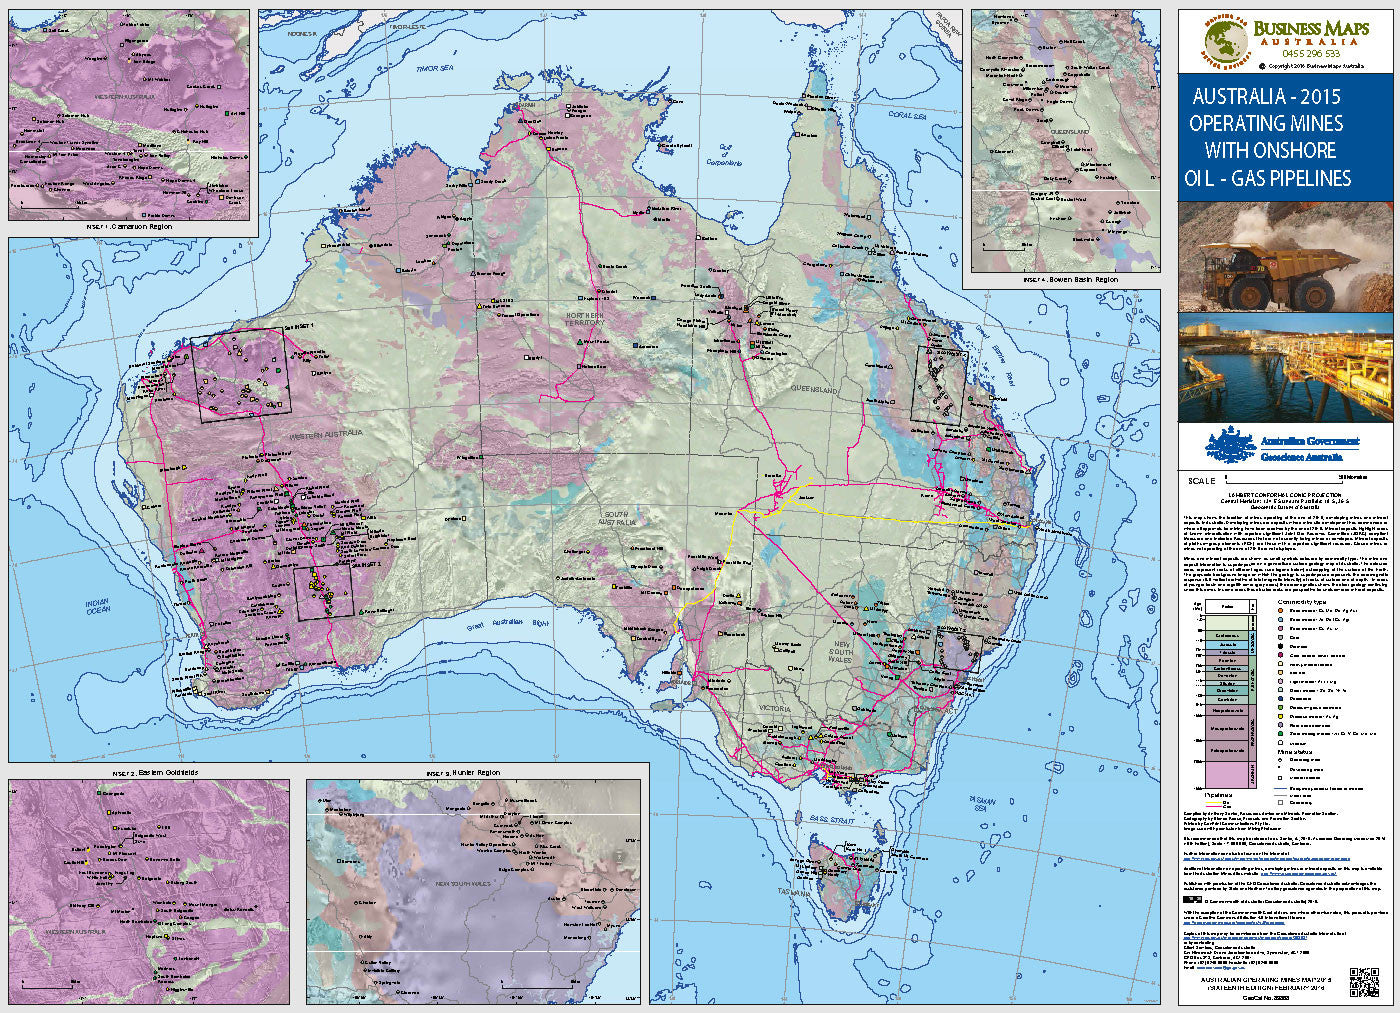 australia oil gas pipelines with operating mines 2017